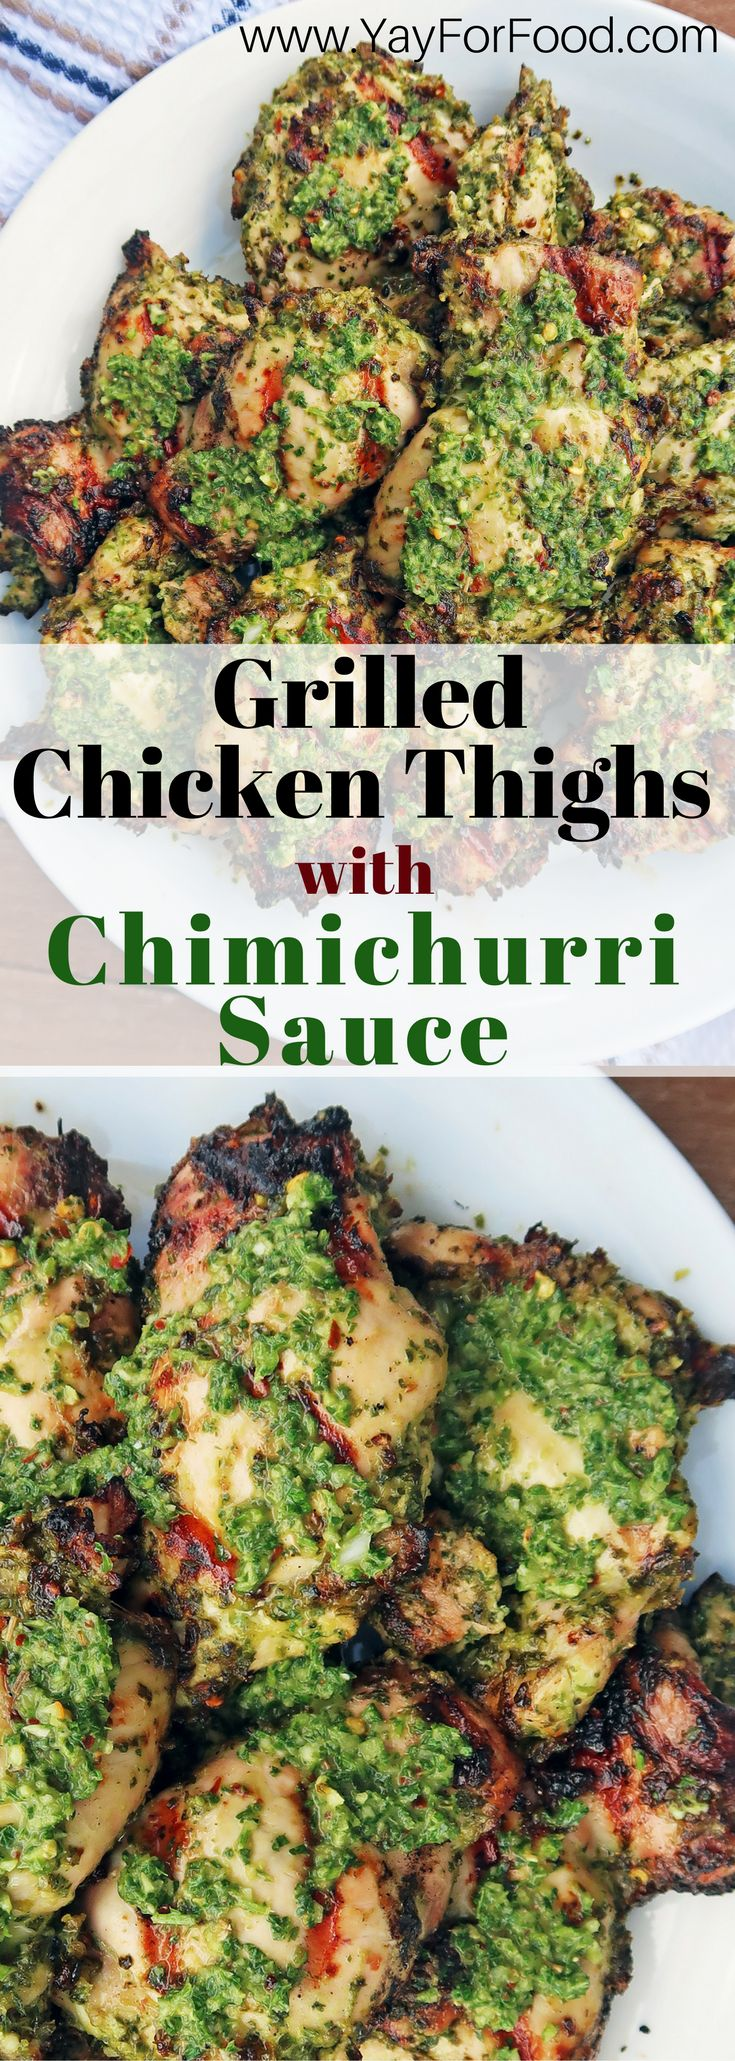 Enjoy delicious, healthy grilled chicken thighs with fresh and flavourful green chimichurri sauce! A tasty main dish that's super easy and quick to prepare! gluten free | paleo | healthy | grilling recipes | easy | fast | Beautiful Cases For Gir